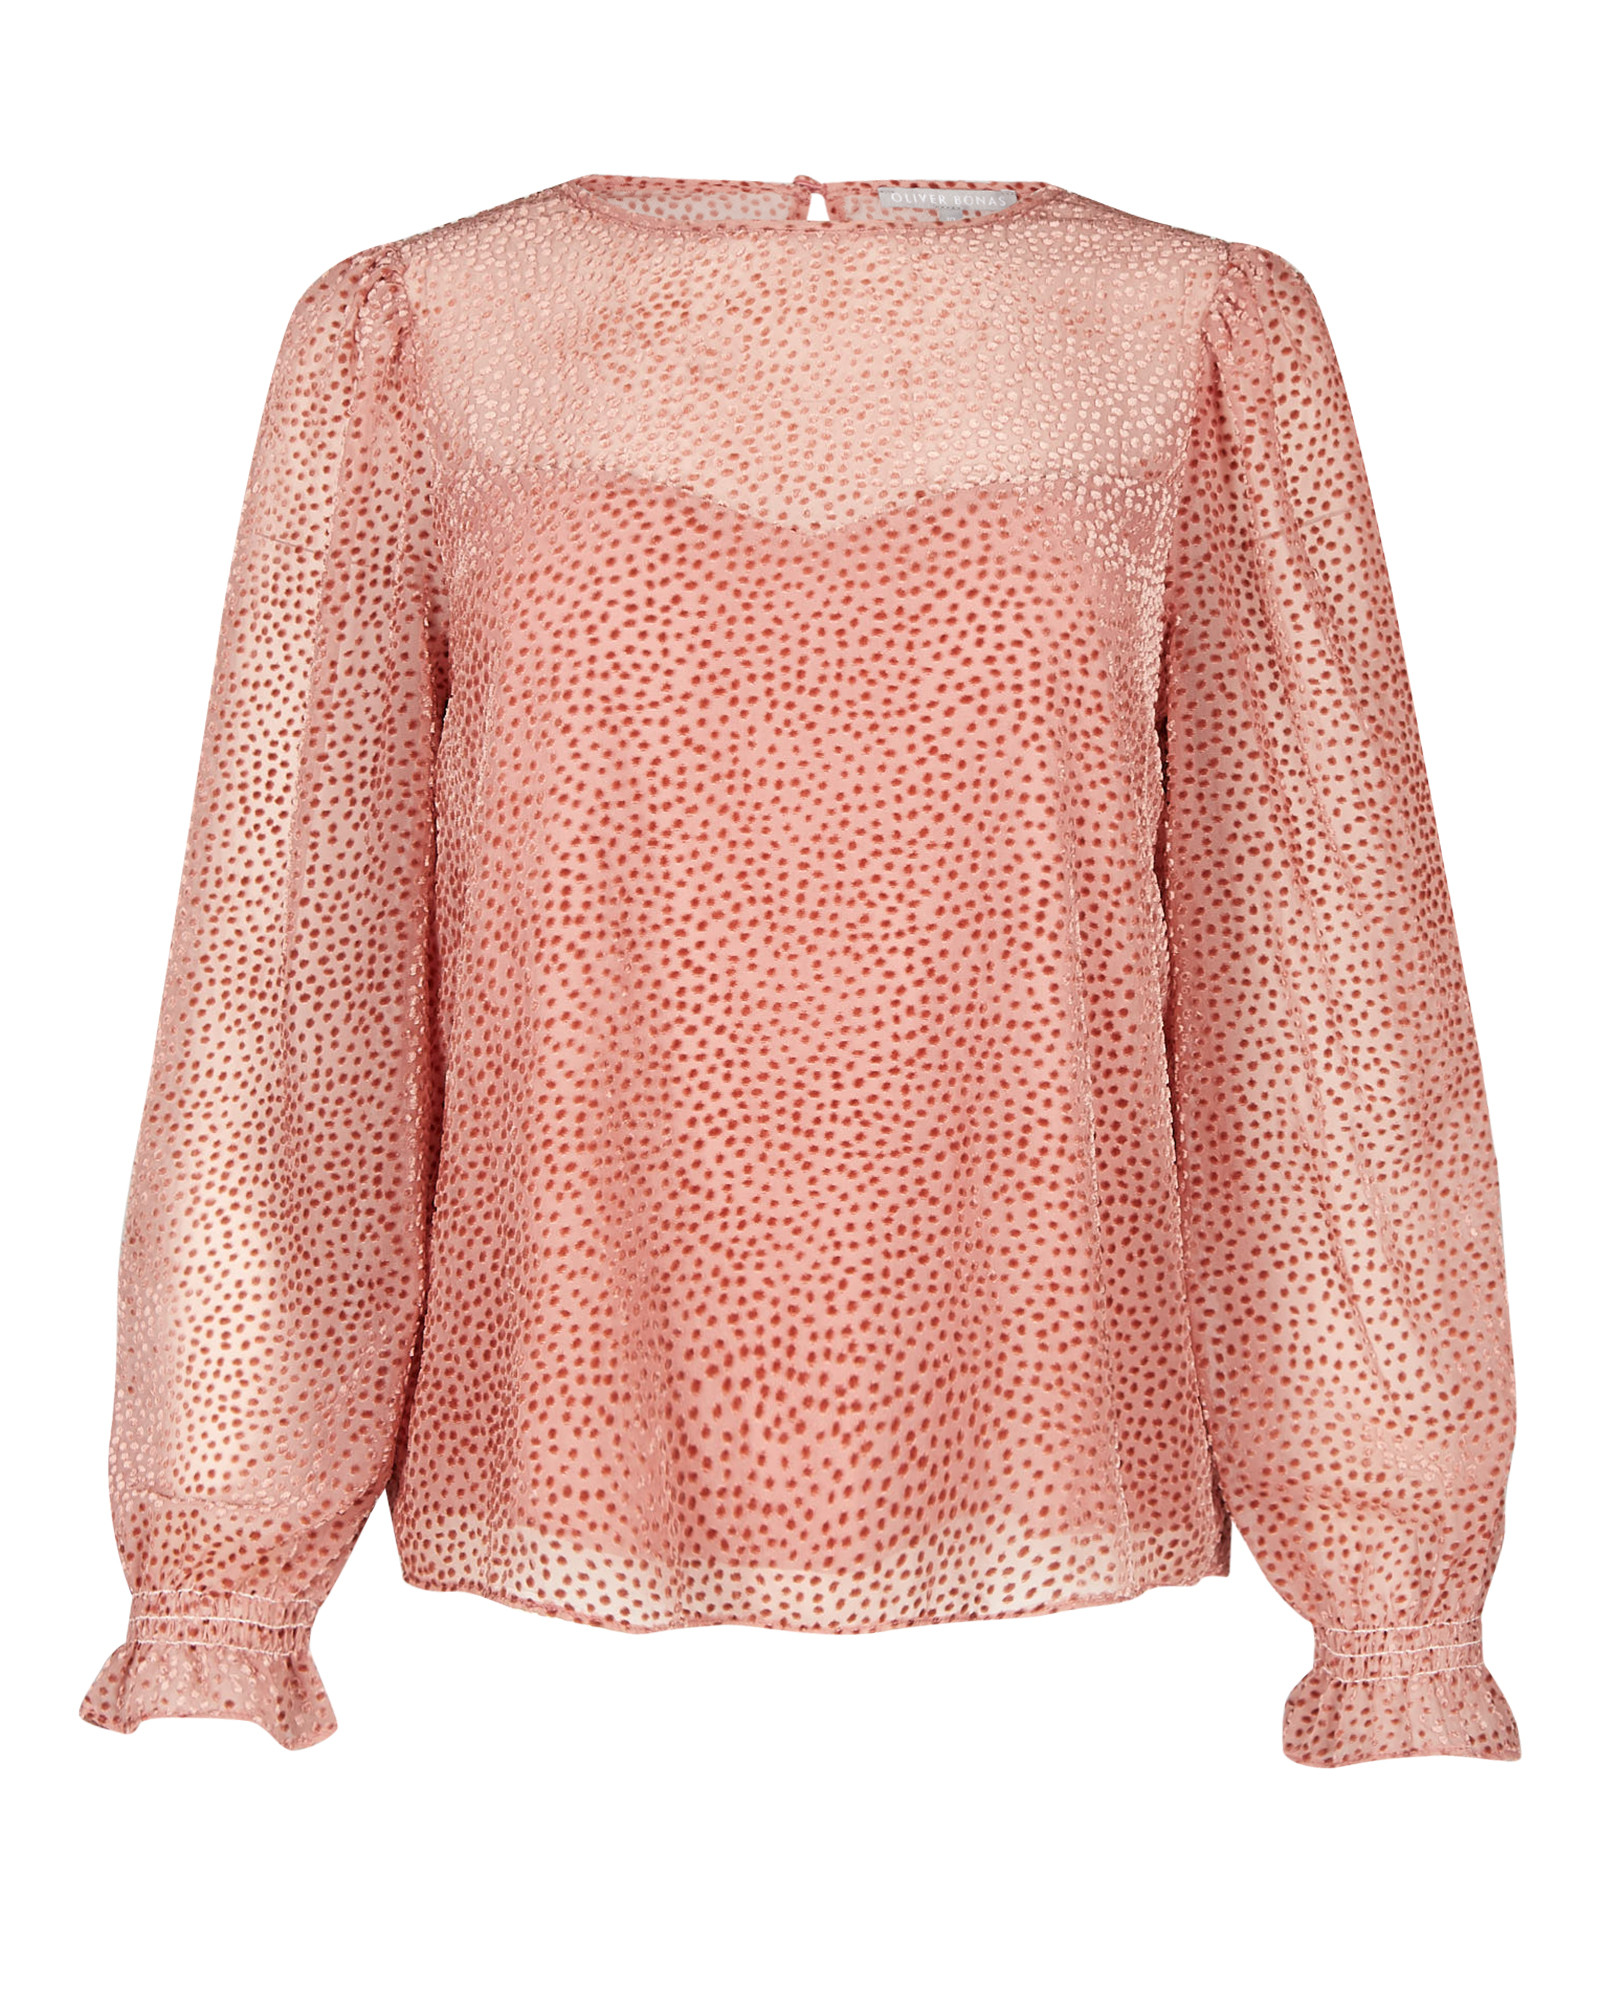 Flocked Spot Pink Long Sleeve Blouse